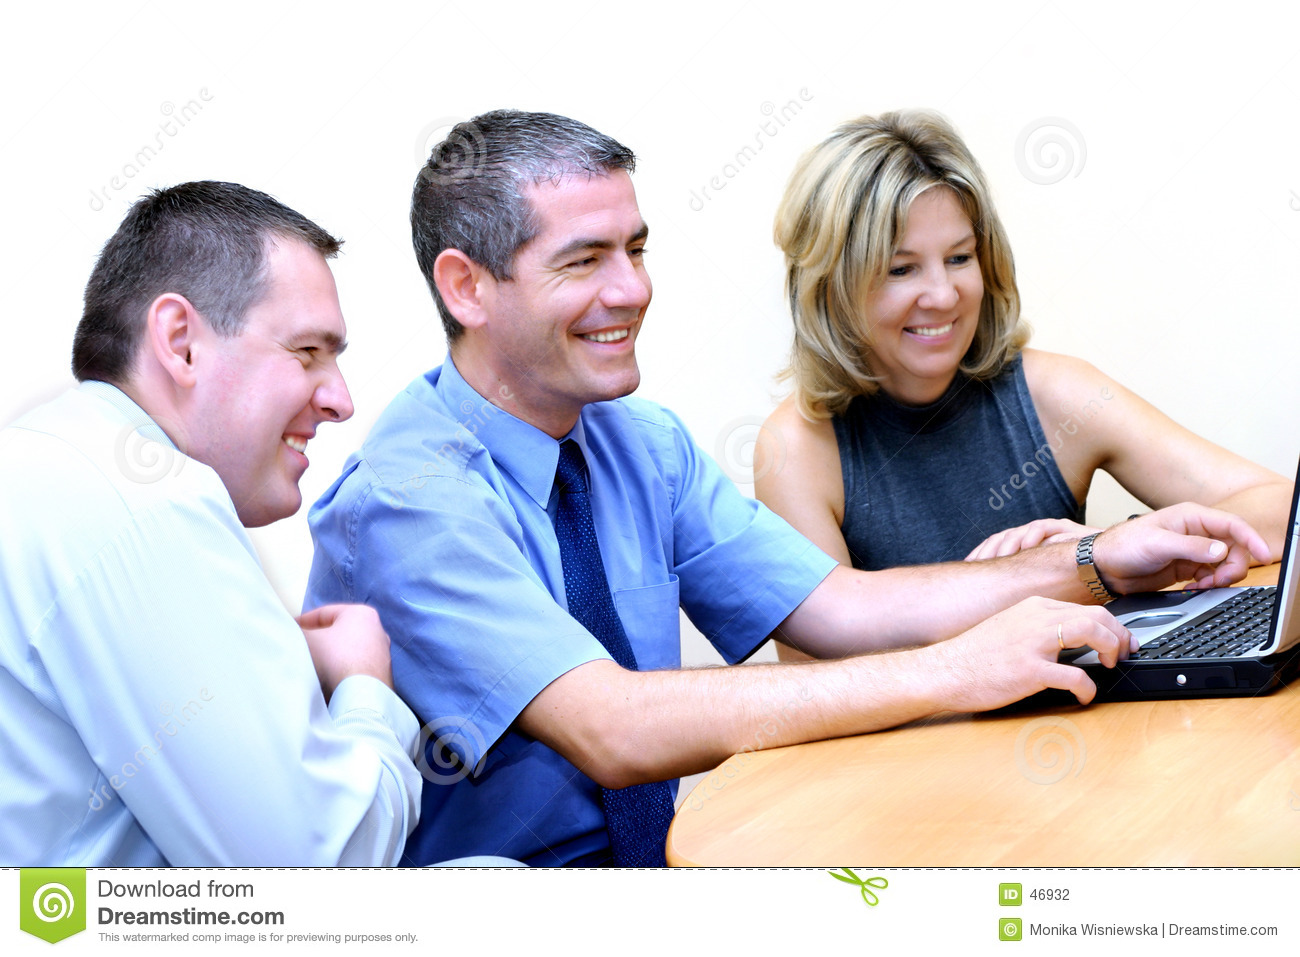 Business People - Browsing WWW 2